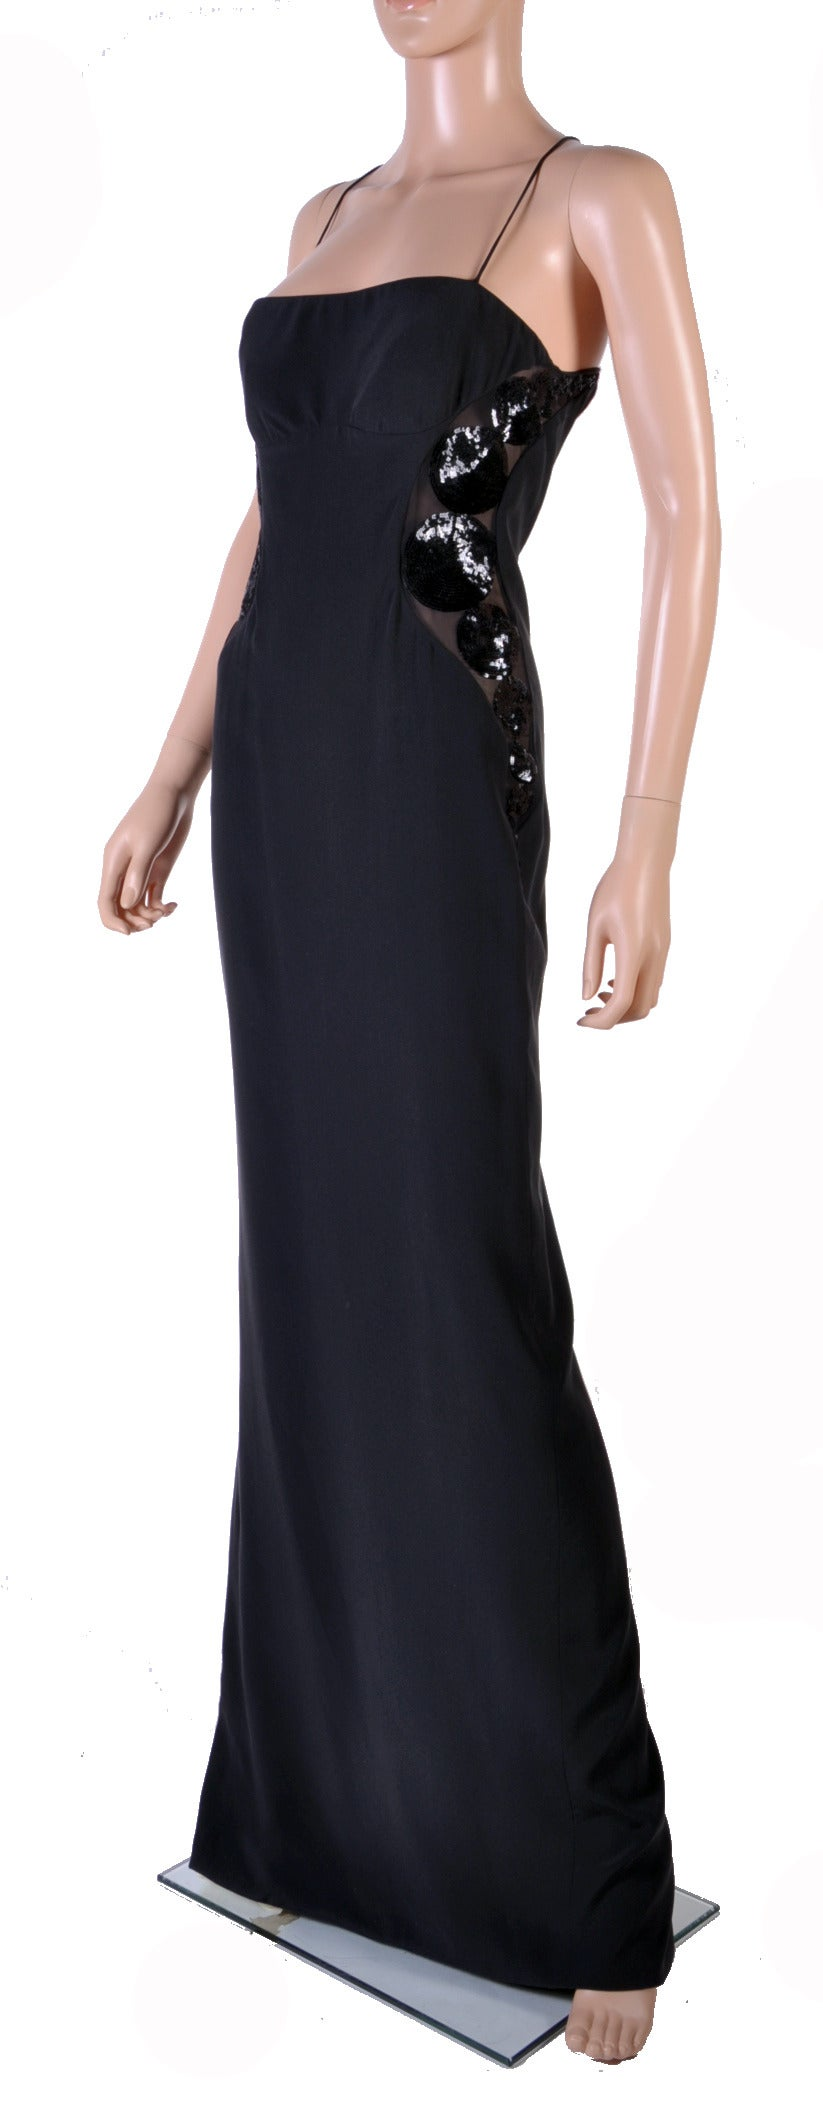 New Versace black embellished gown 2